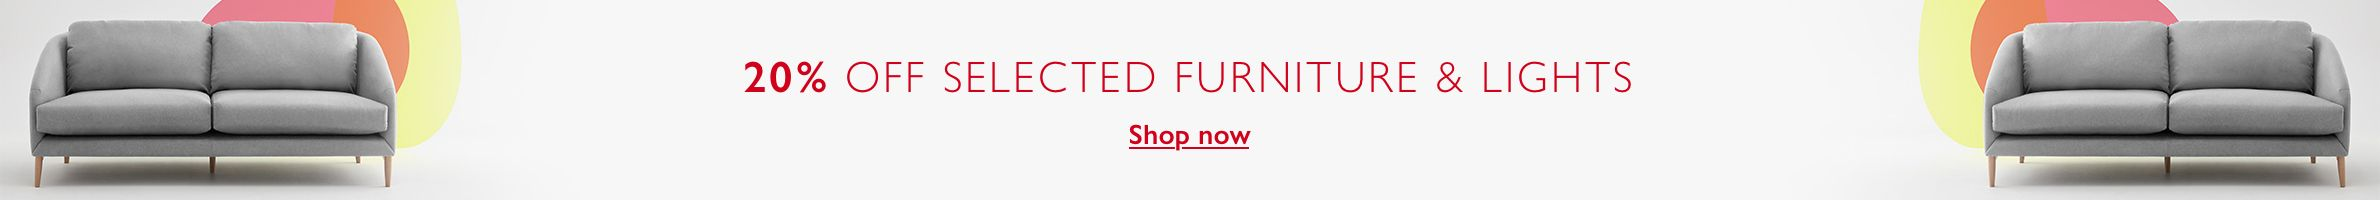 Furniture & Lighting Easter Offers